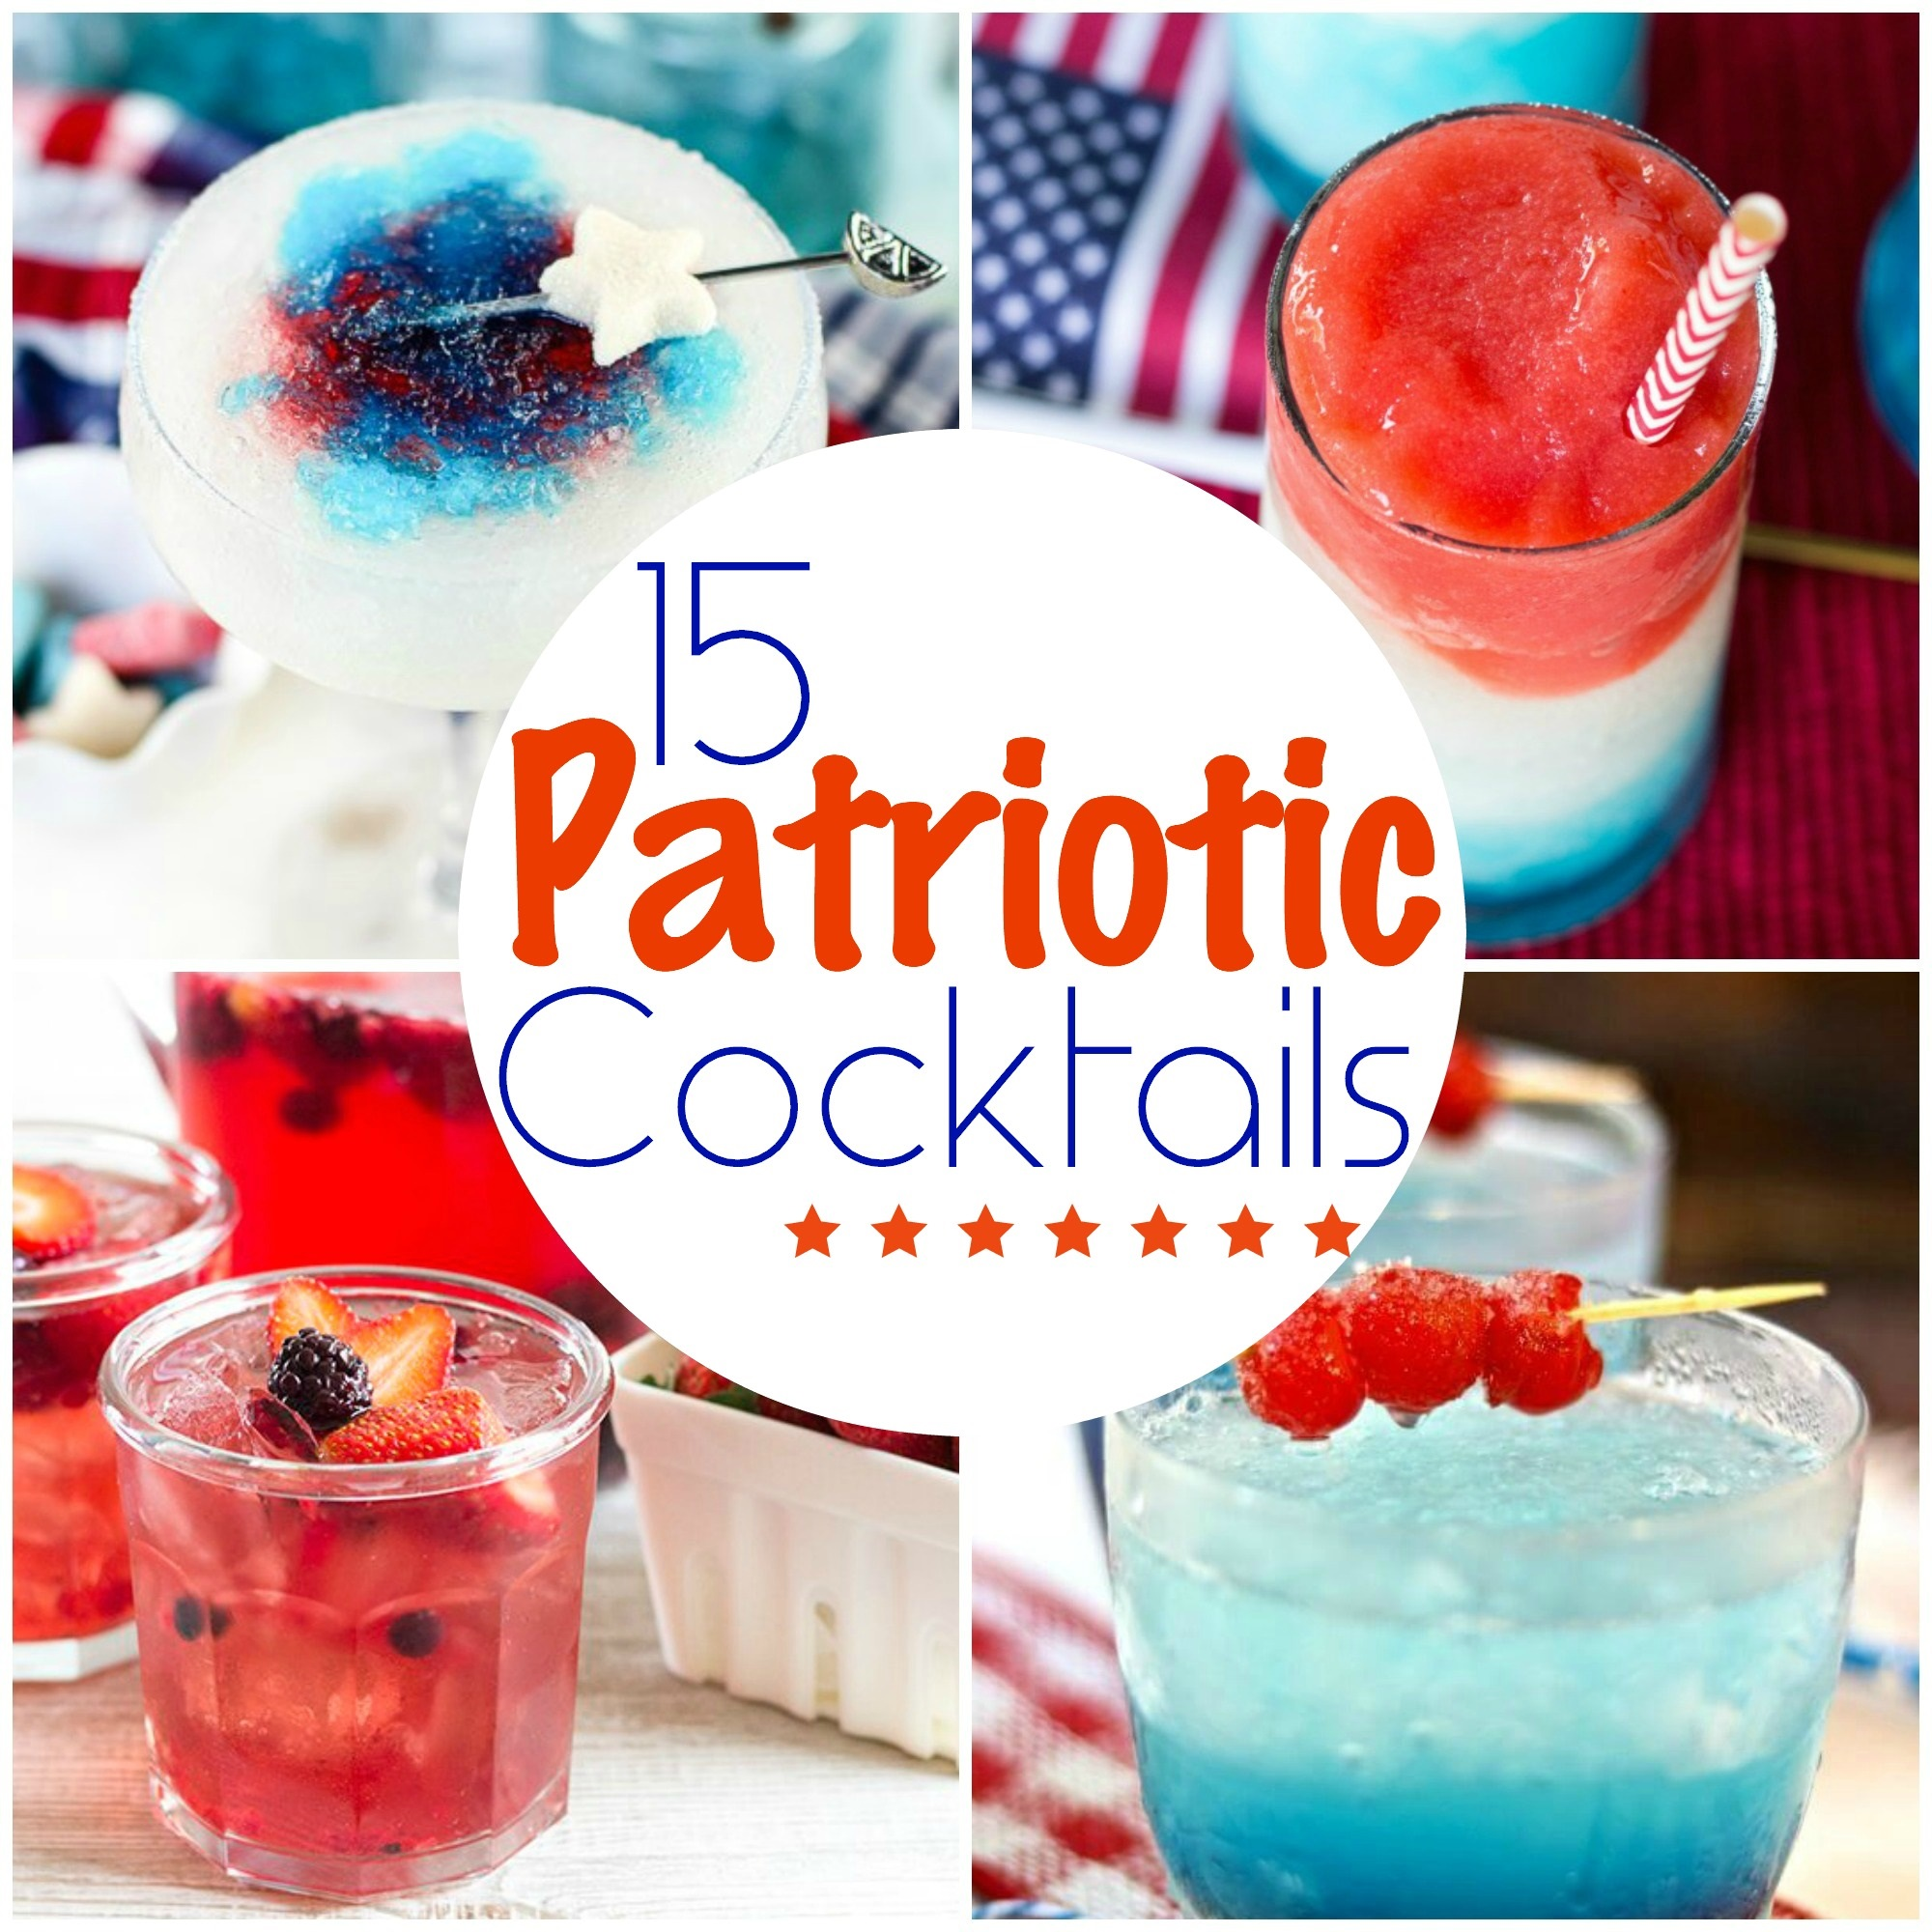 15 Patriotic Cocktails. Red, White and Blue Cocktails for Memorial Day, 4th of July or Labor Day